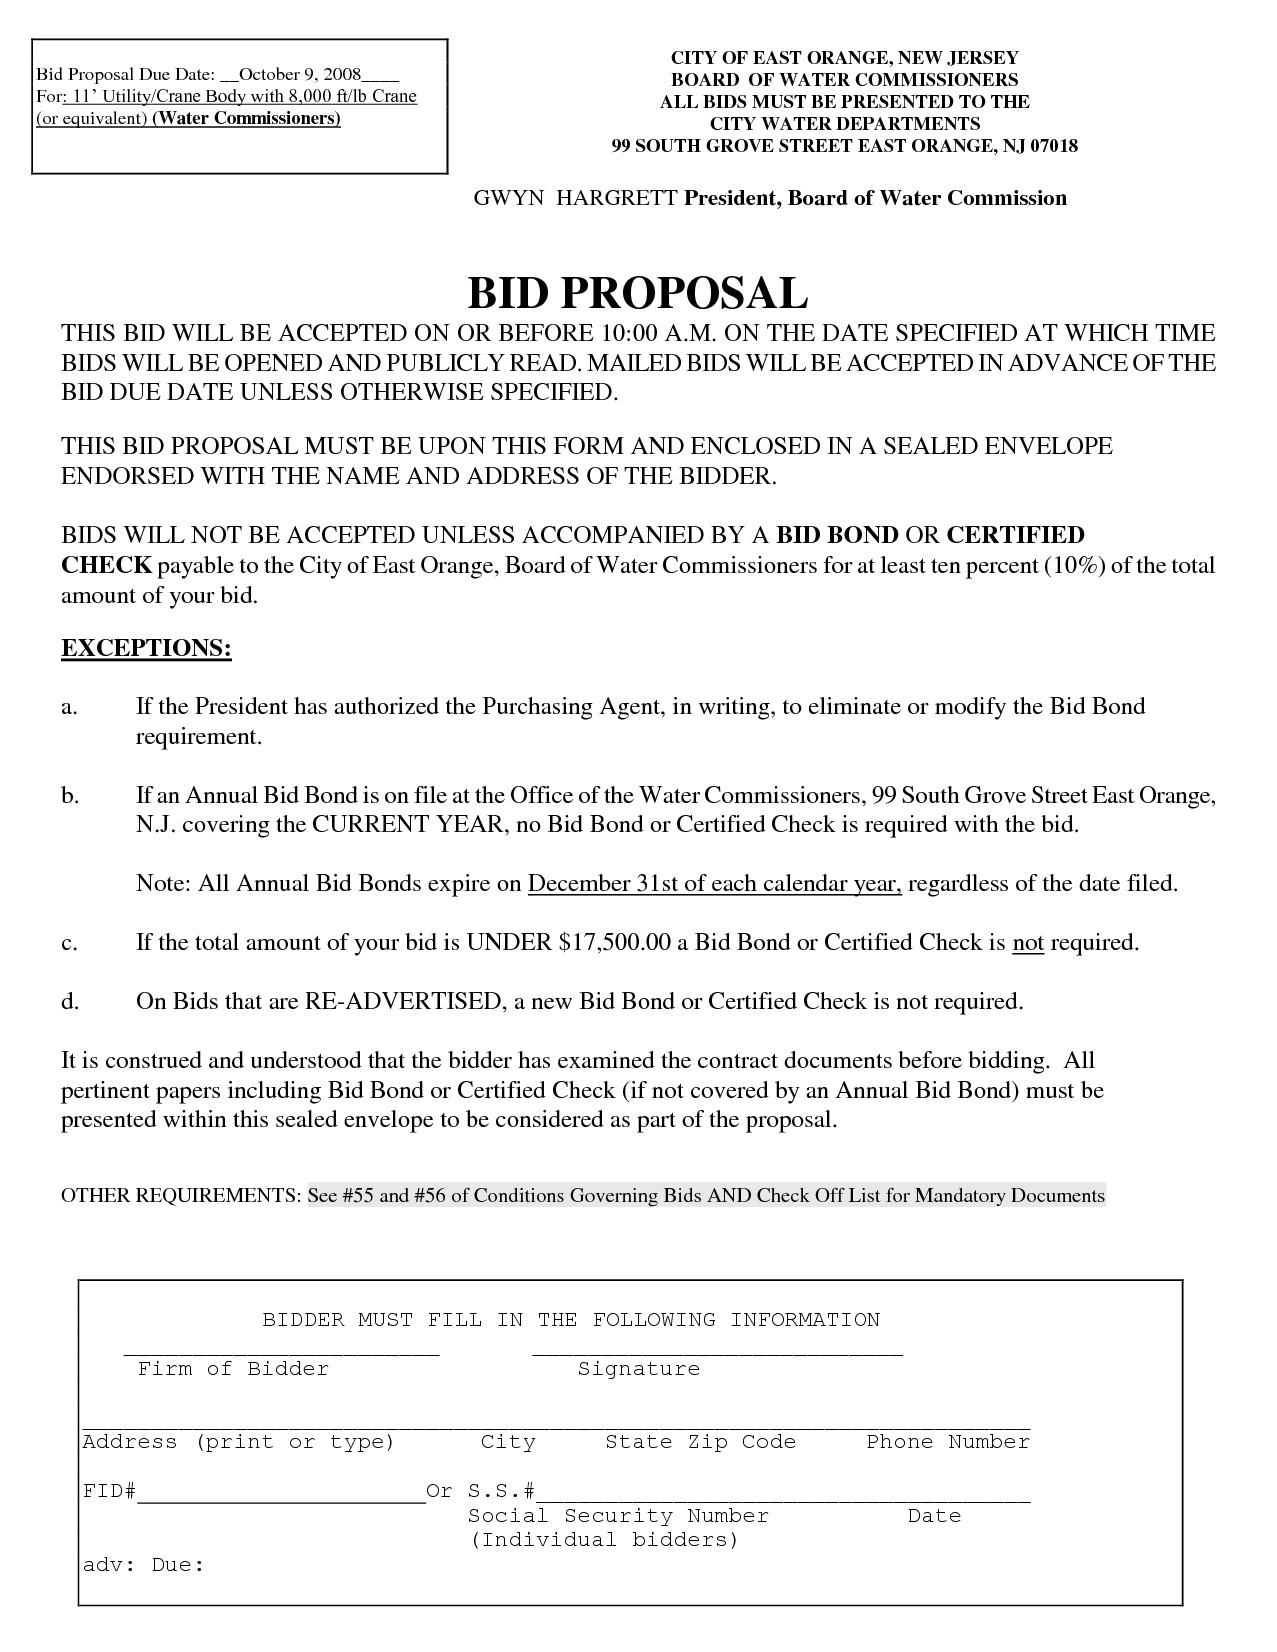 1659 government contract proposal template